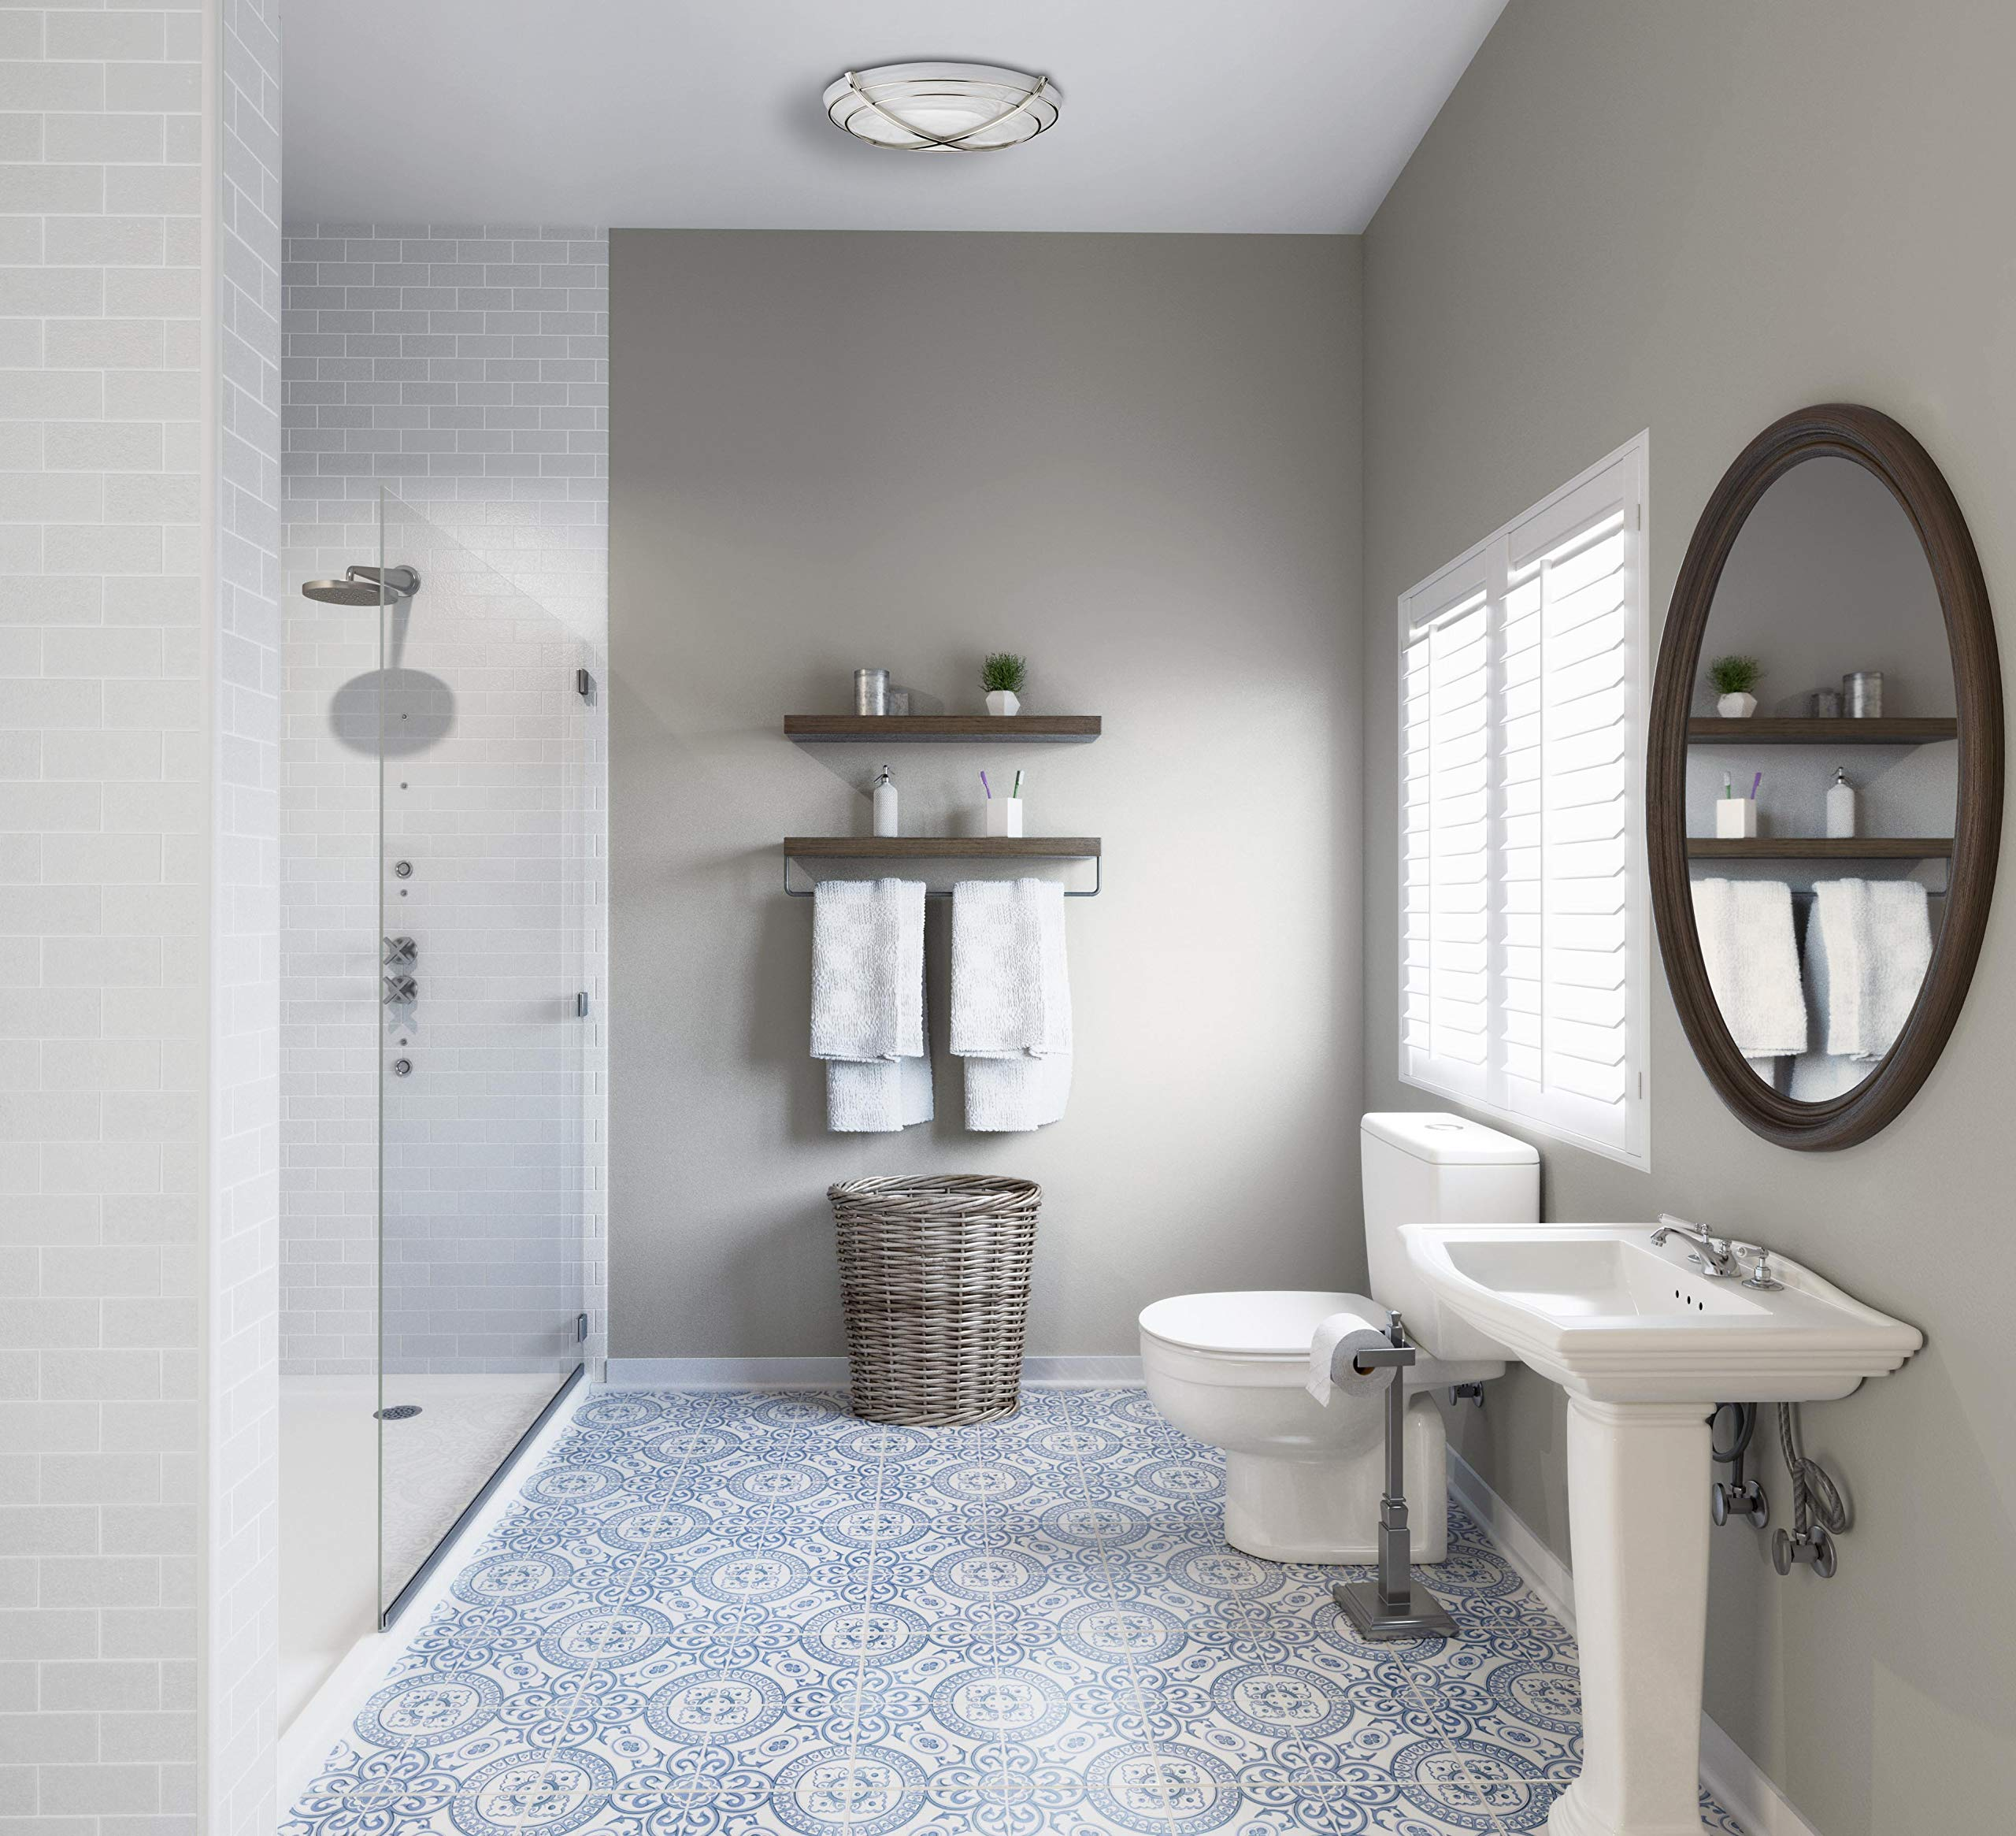 Hunter 81030 Halcyon Bathroom Exhaust Fan and Light in Contemporary Cast Chrome by Hunter Home Comfort (Image #10)